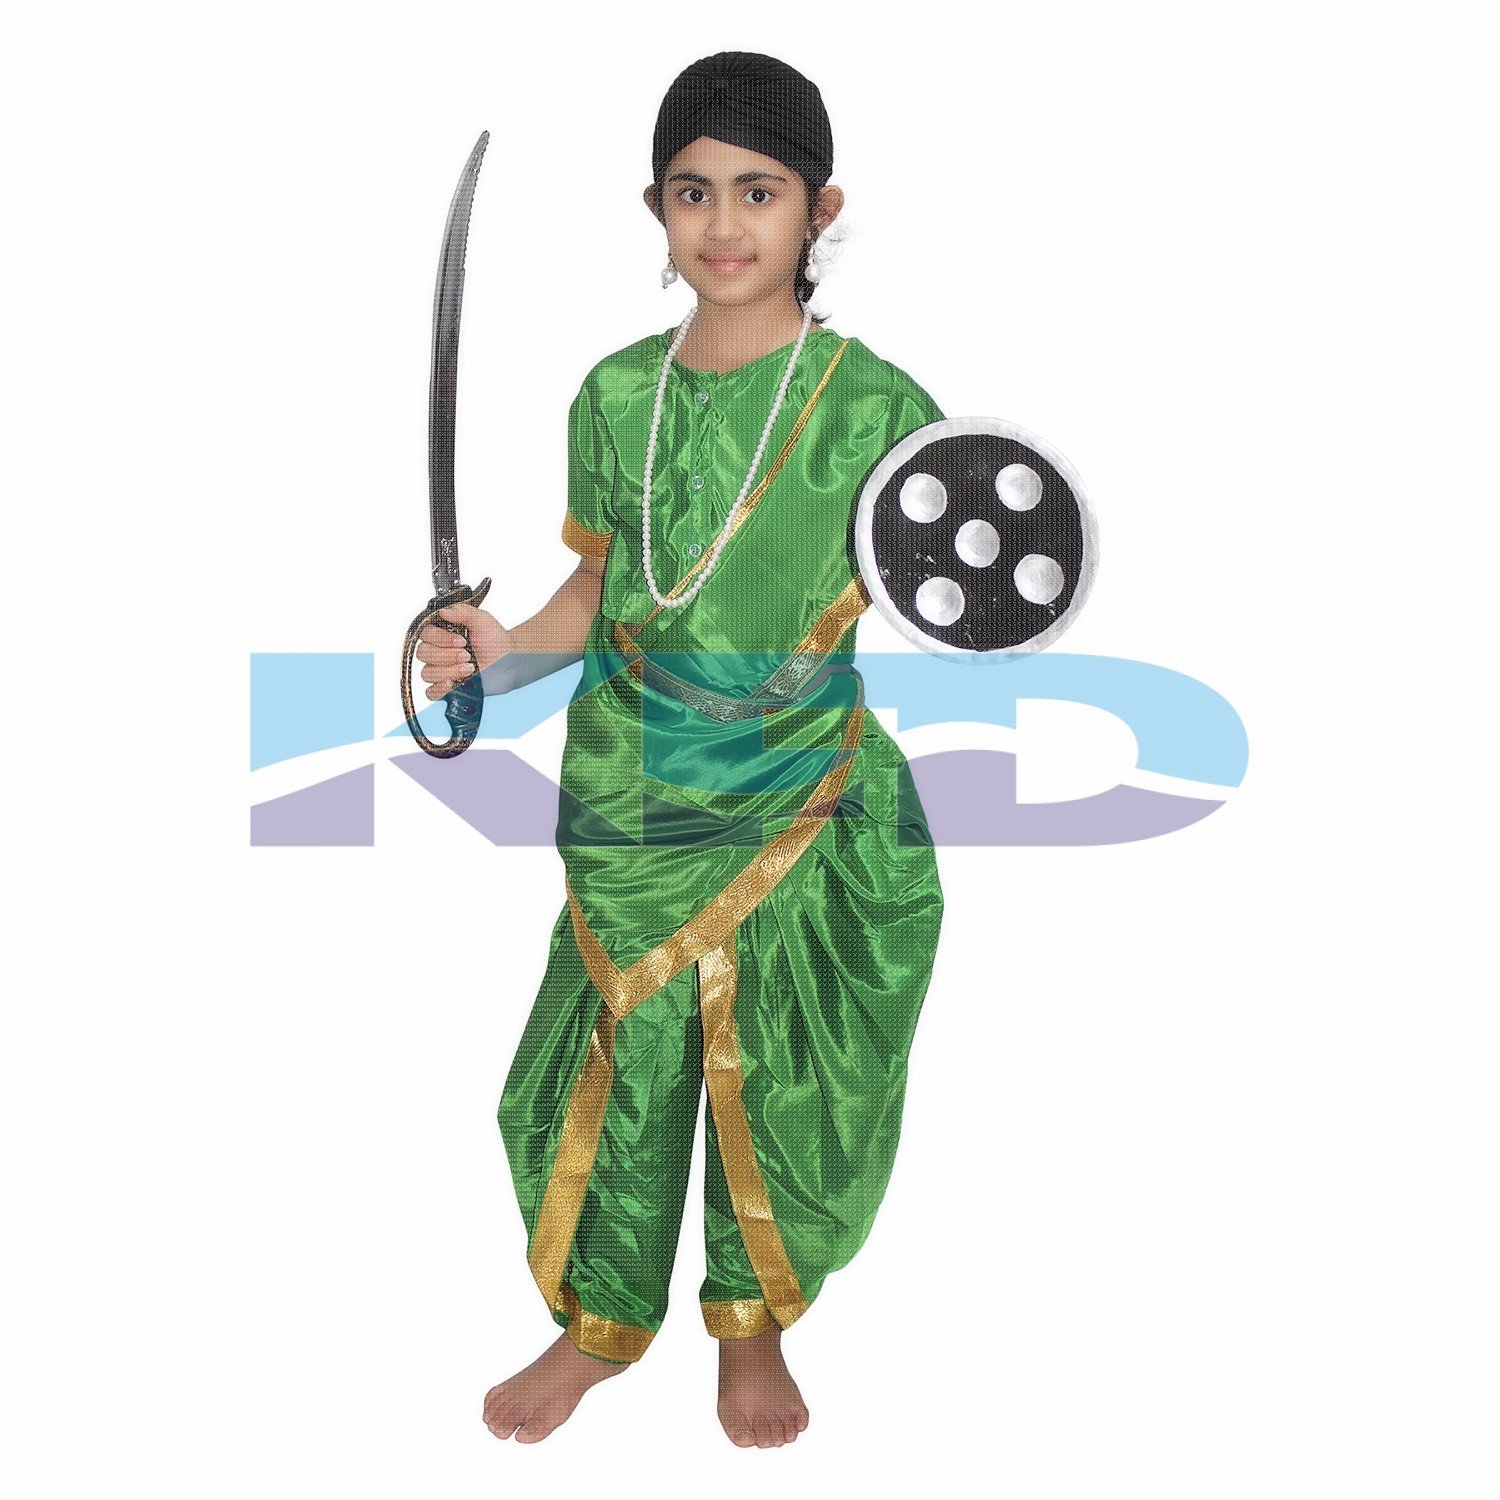 Rani Laxmi Bai Green National Hero/freedom figter Costume for Independence Day/Republic Day/Annual function/theme party/Competition/Stage Shows Dress